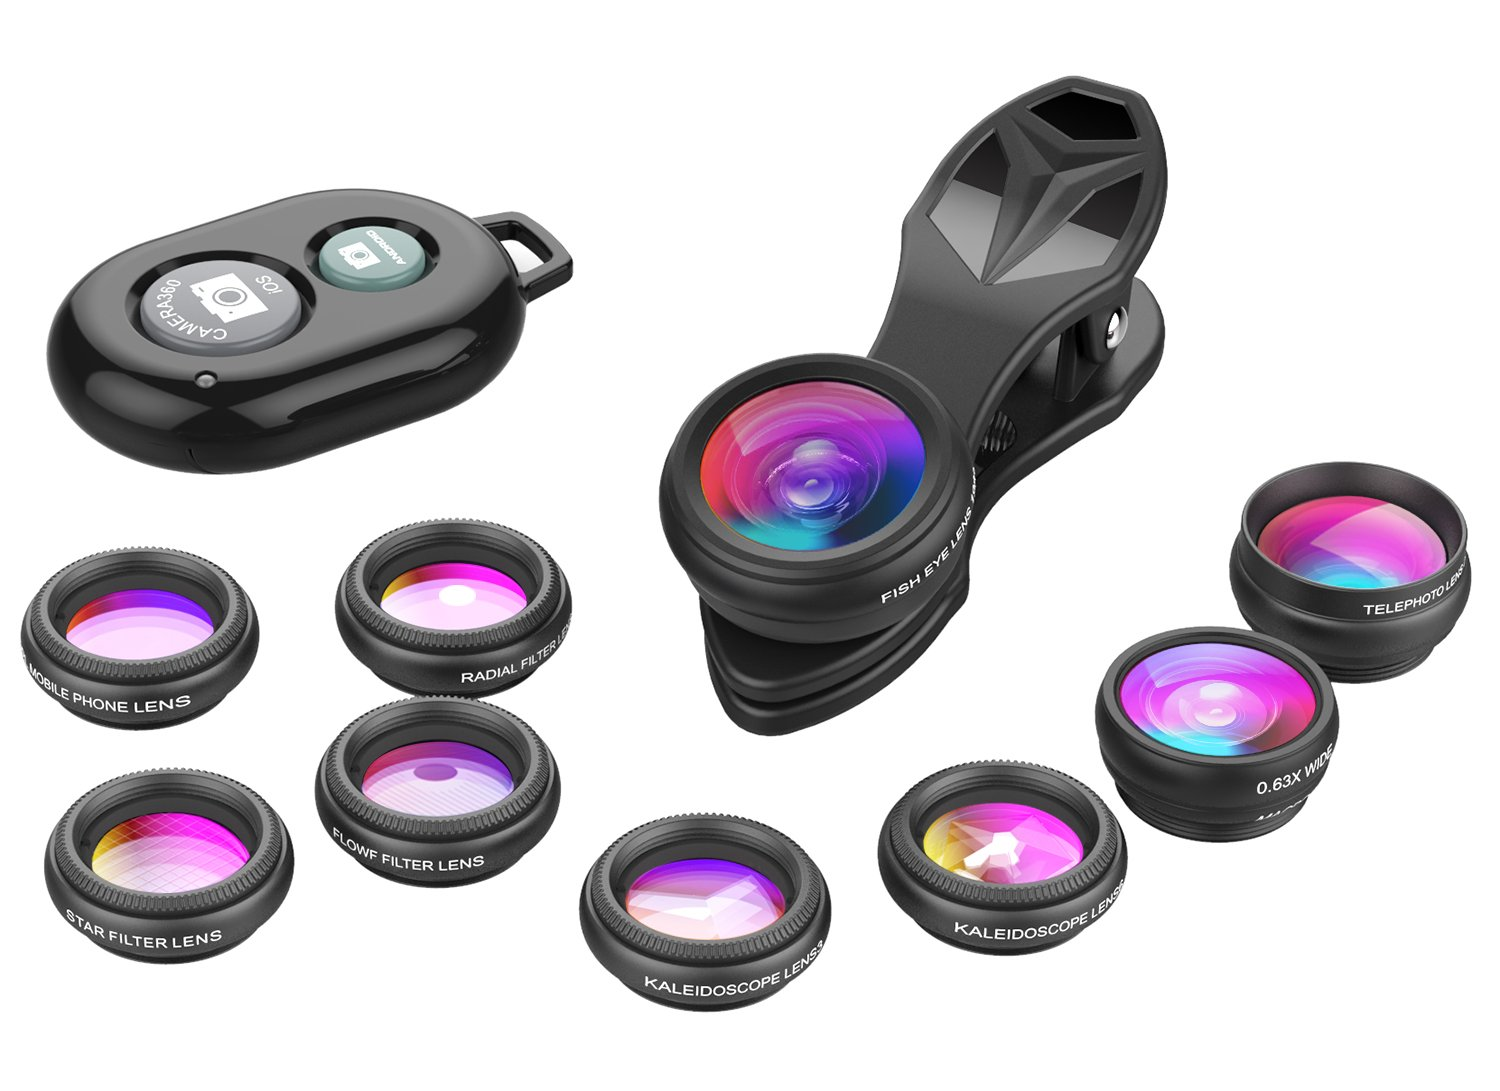 Apexel Phone Camera Lens-Macro Lens+Wide Lens+Fisheye Lens+Telephoto Lens+CPL/Flow/Radial/Star Filter+Kaleidoscope 3/6 Lens 10 in 1 Lens Kit +Remote Shutter for iPhone, Samsung,LG and Most Smartphones by Apexel